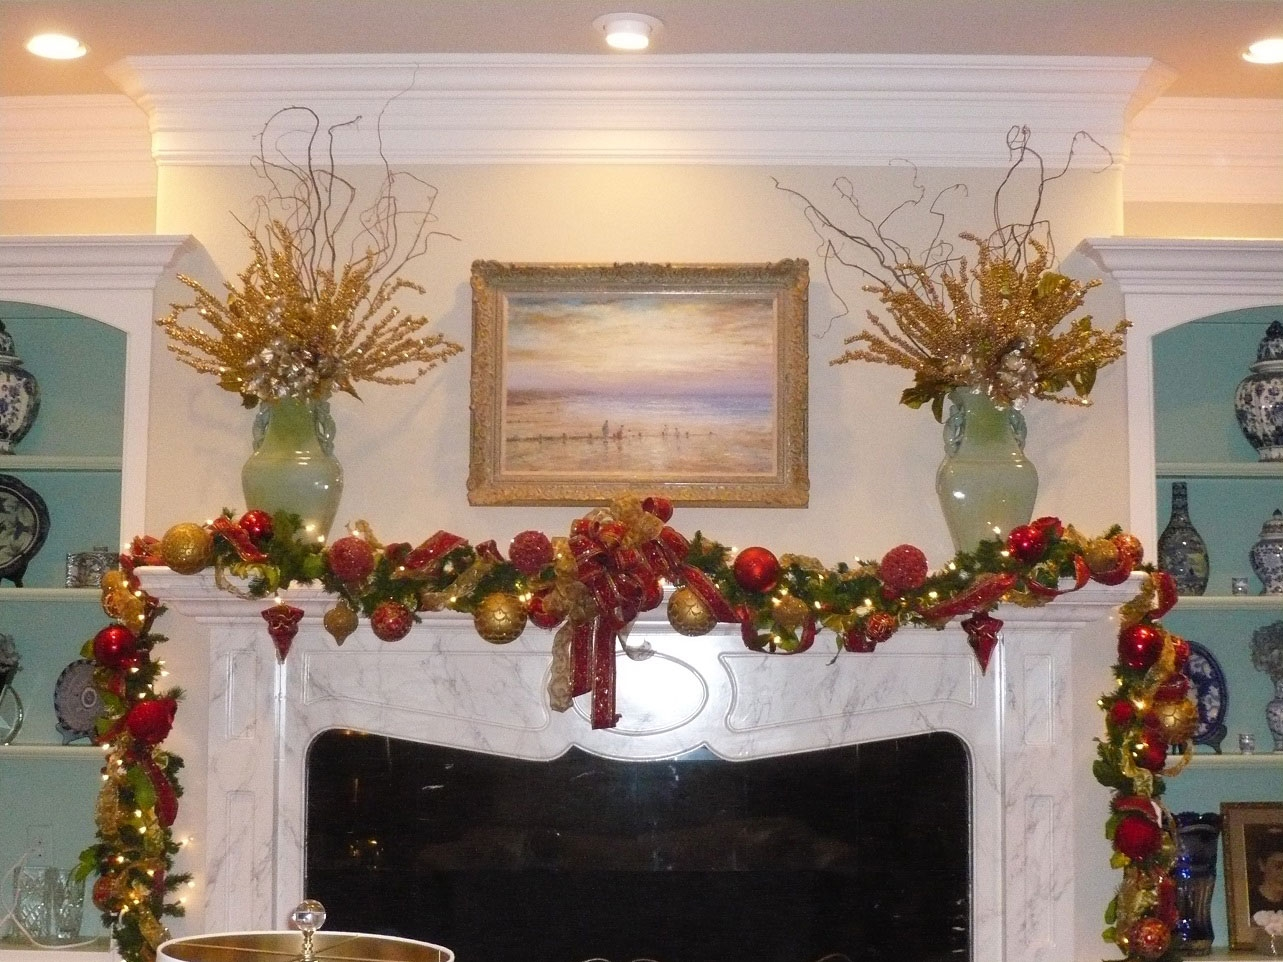 Celebrate The Joyful Christmas Moments In Your Home With